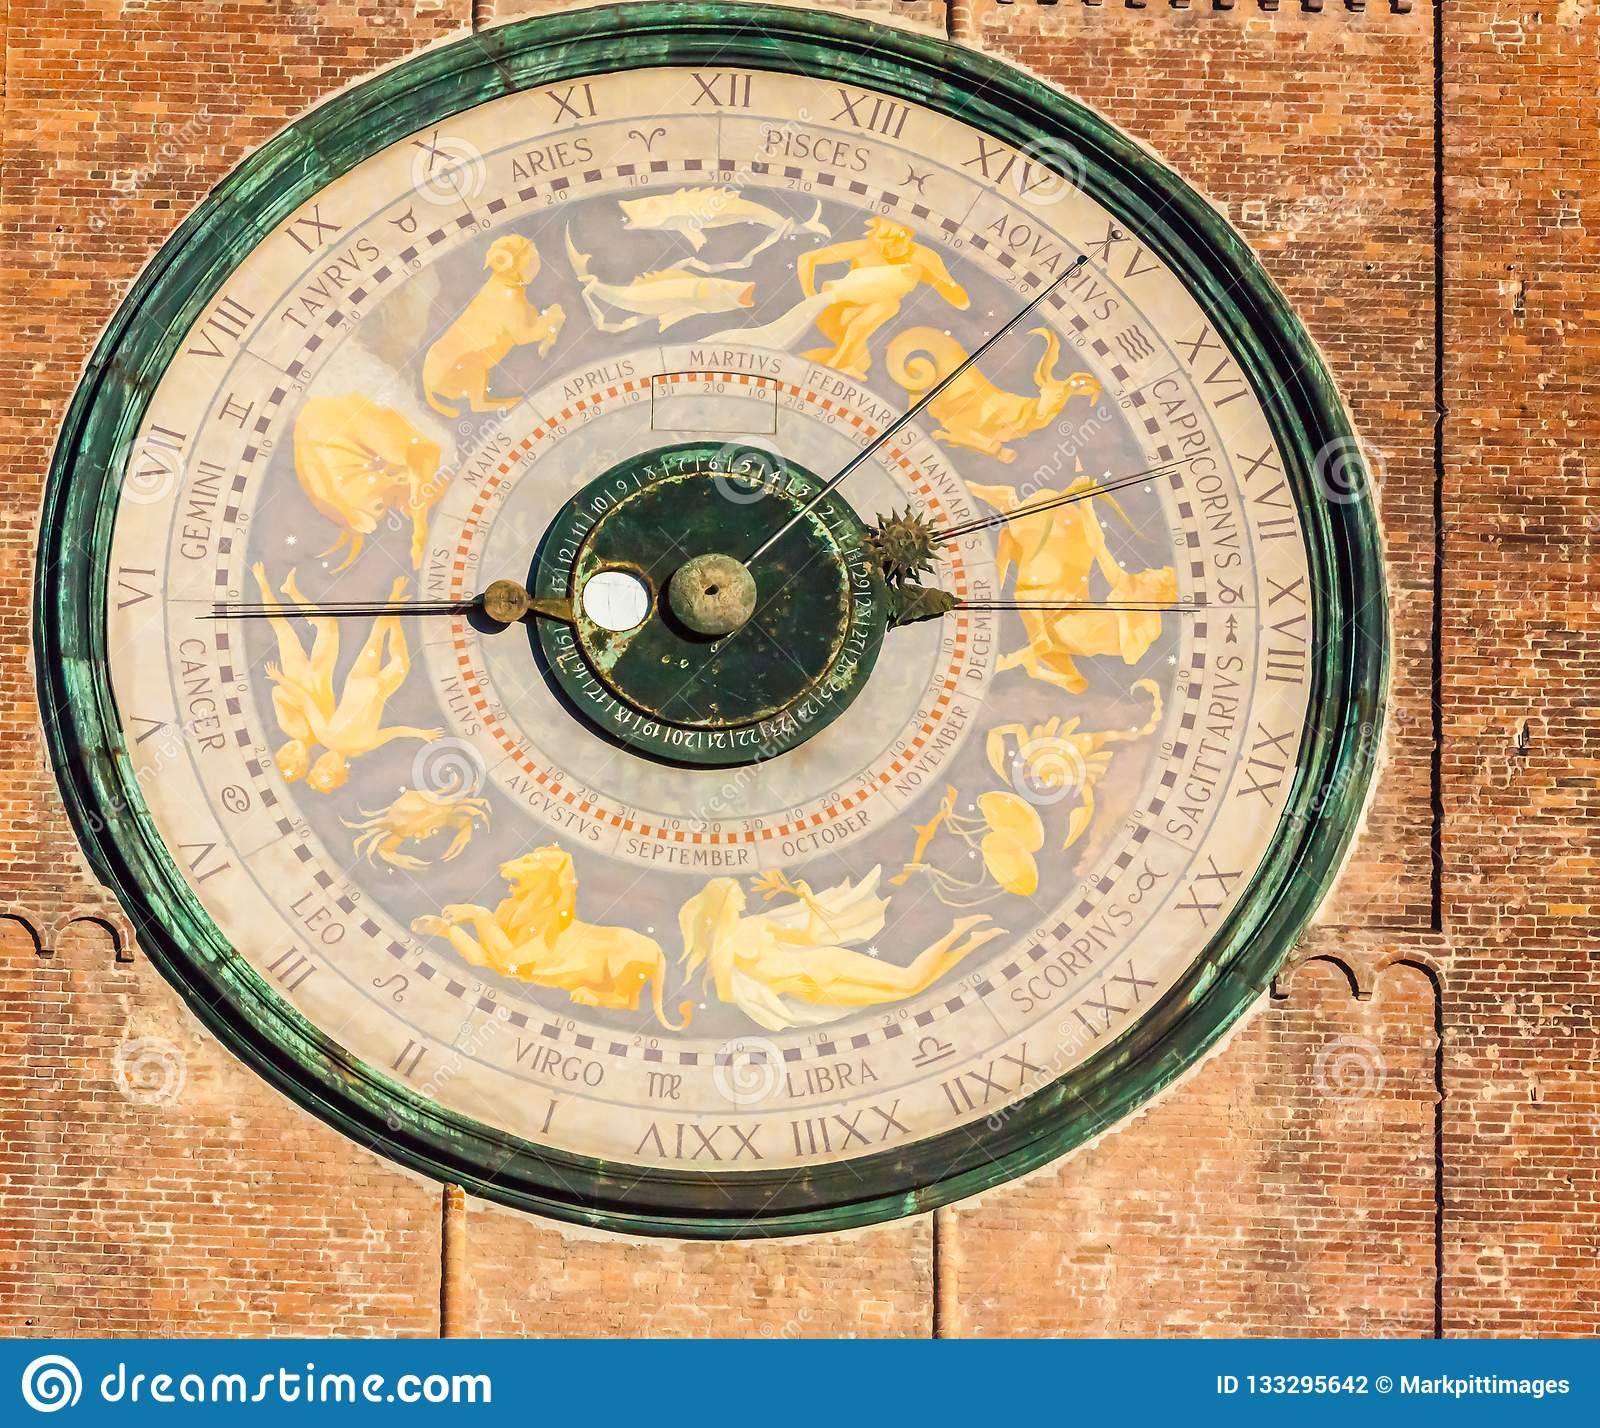 Detail of astronomical clock in Torrazzo tower Cremona Italy